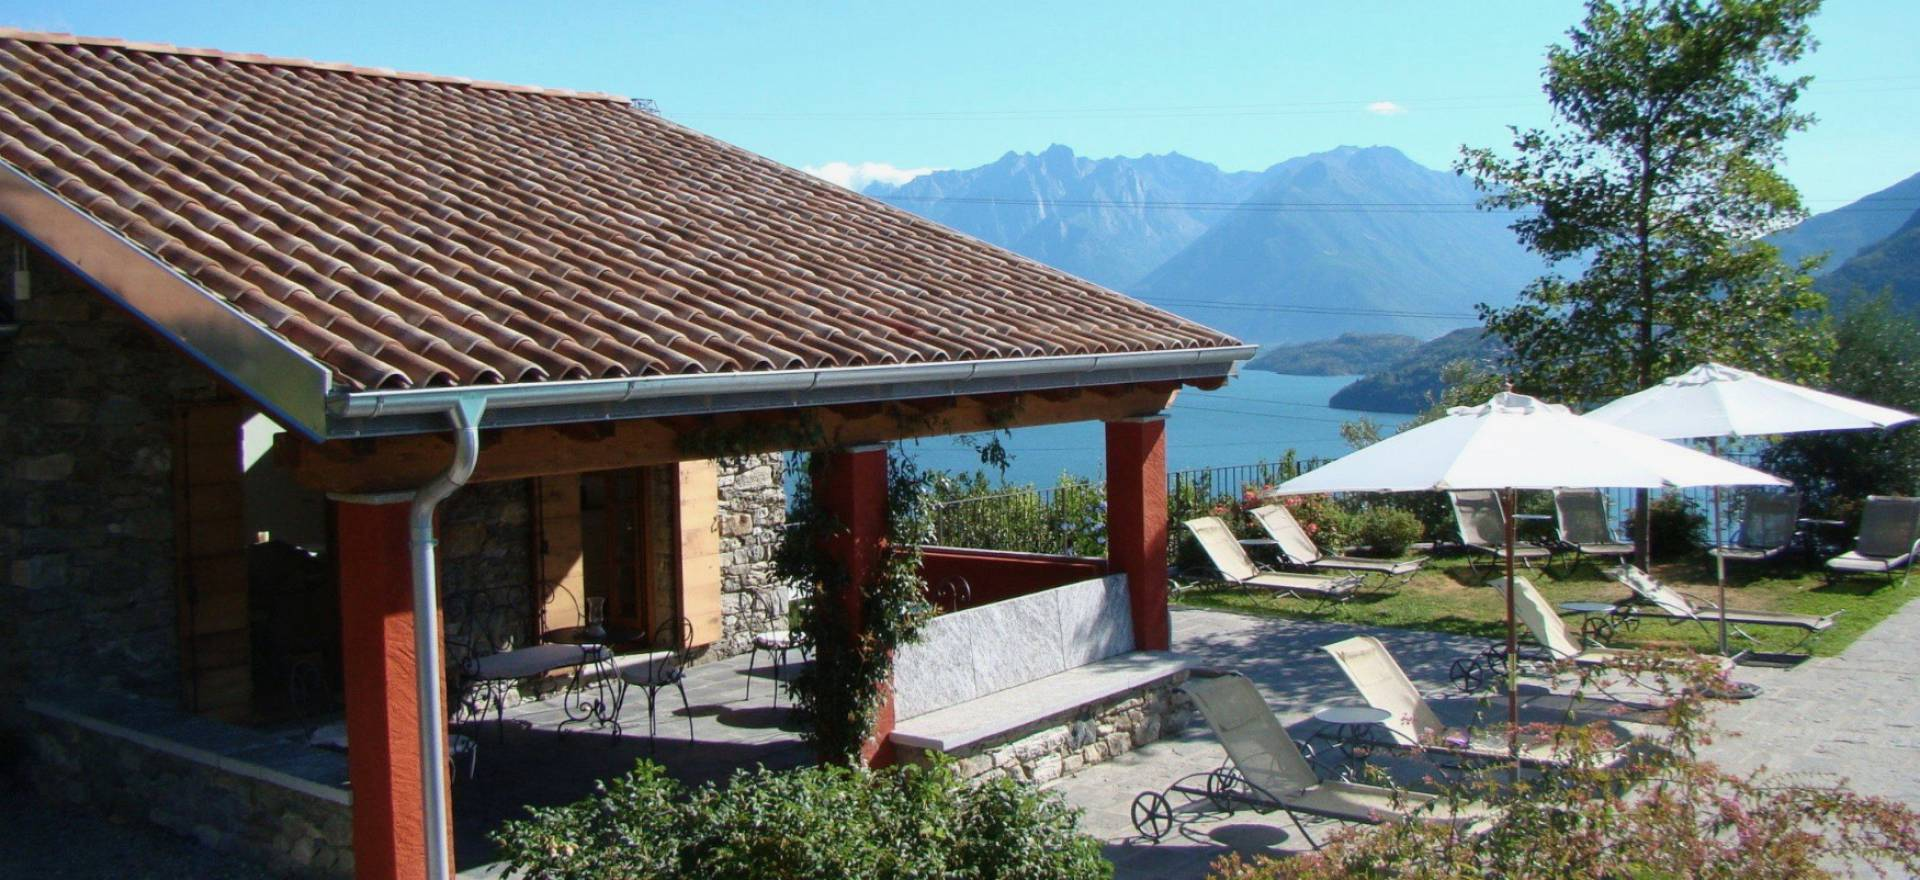 Agriturismo Lake Como and Lake Garda Luxury agriturismo with pool overlooking Lake Como!